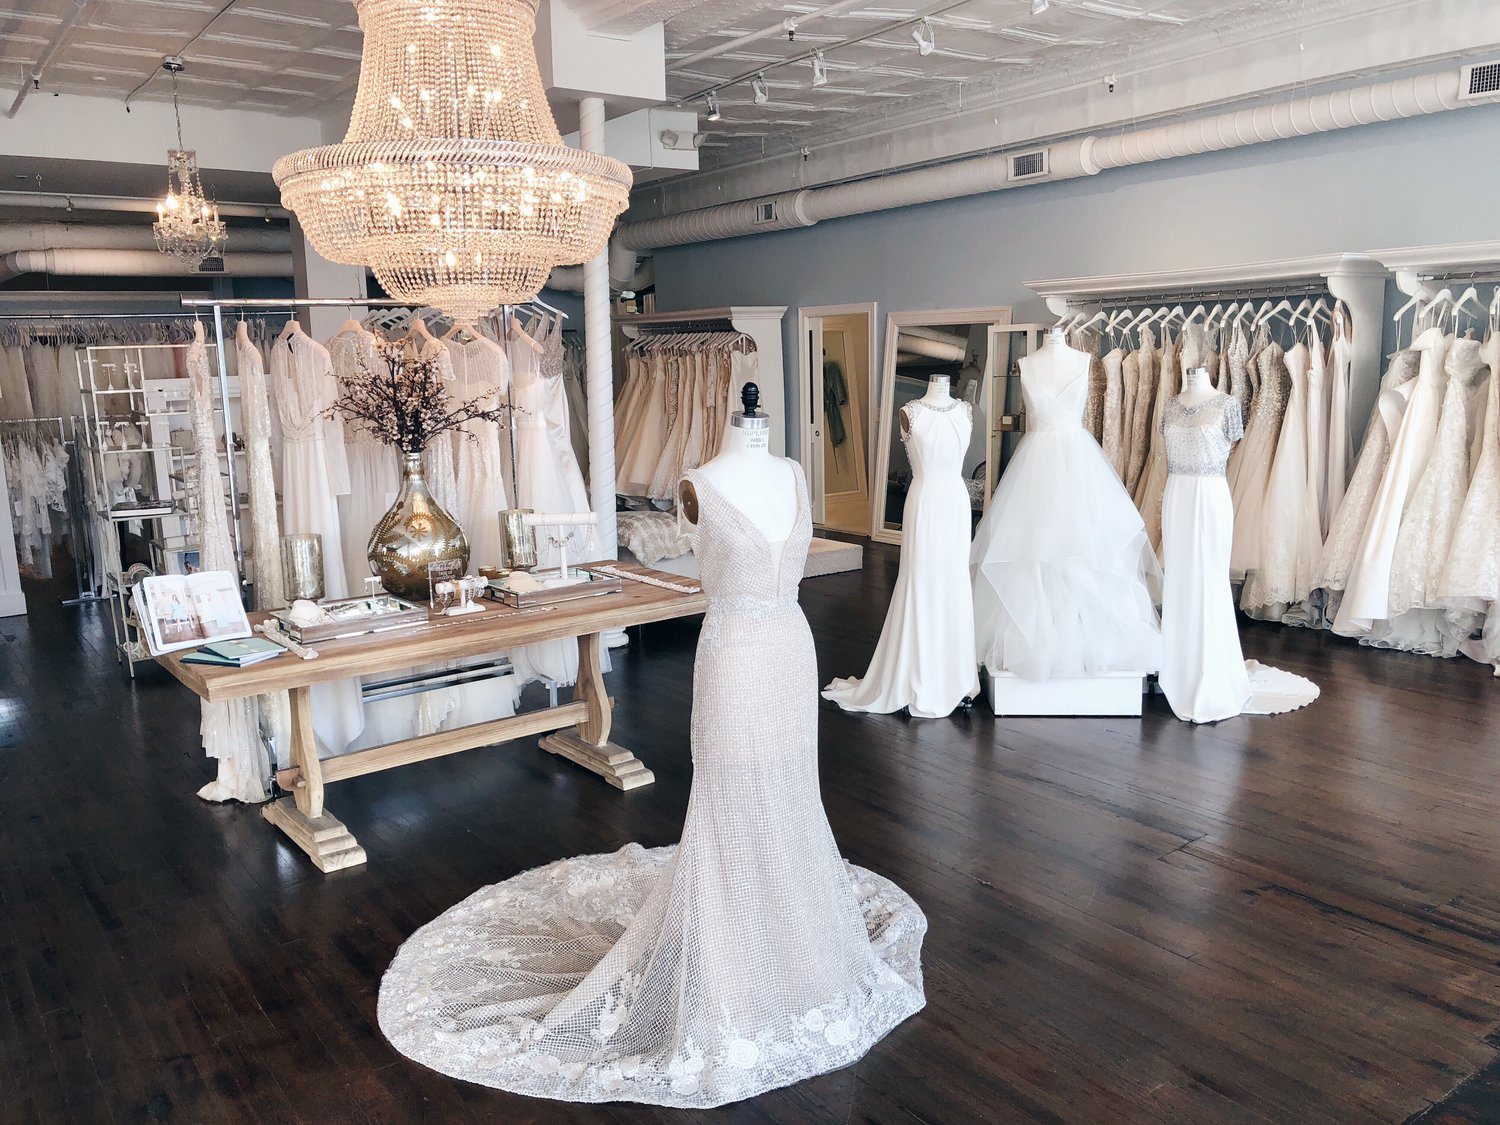 White Friday Holiday Event Columbus Ohio Designer Bridal Gowns La Jeune Mariee Collection,Wedding Traditional Wedding Guest Dress Ghanaian Lace Styles